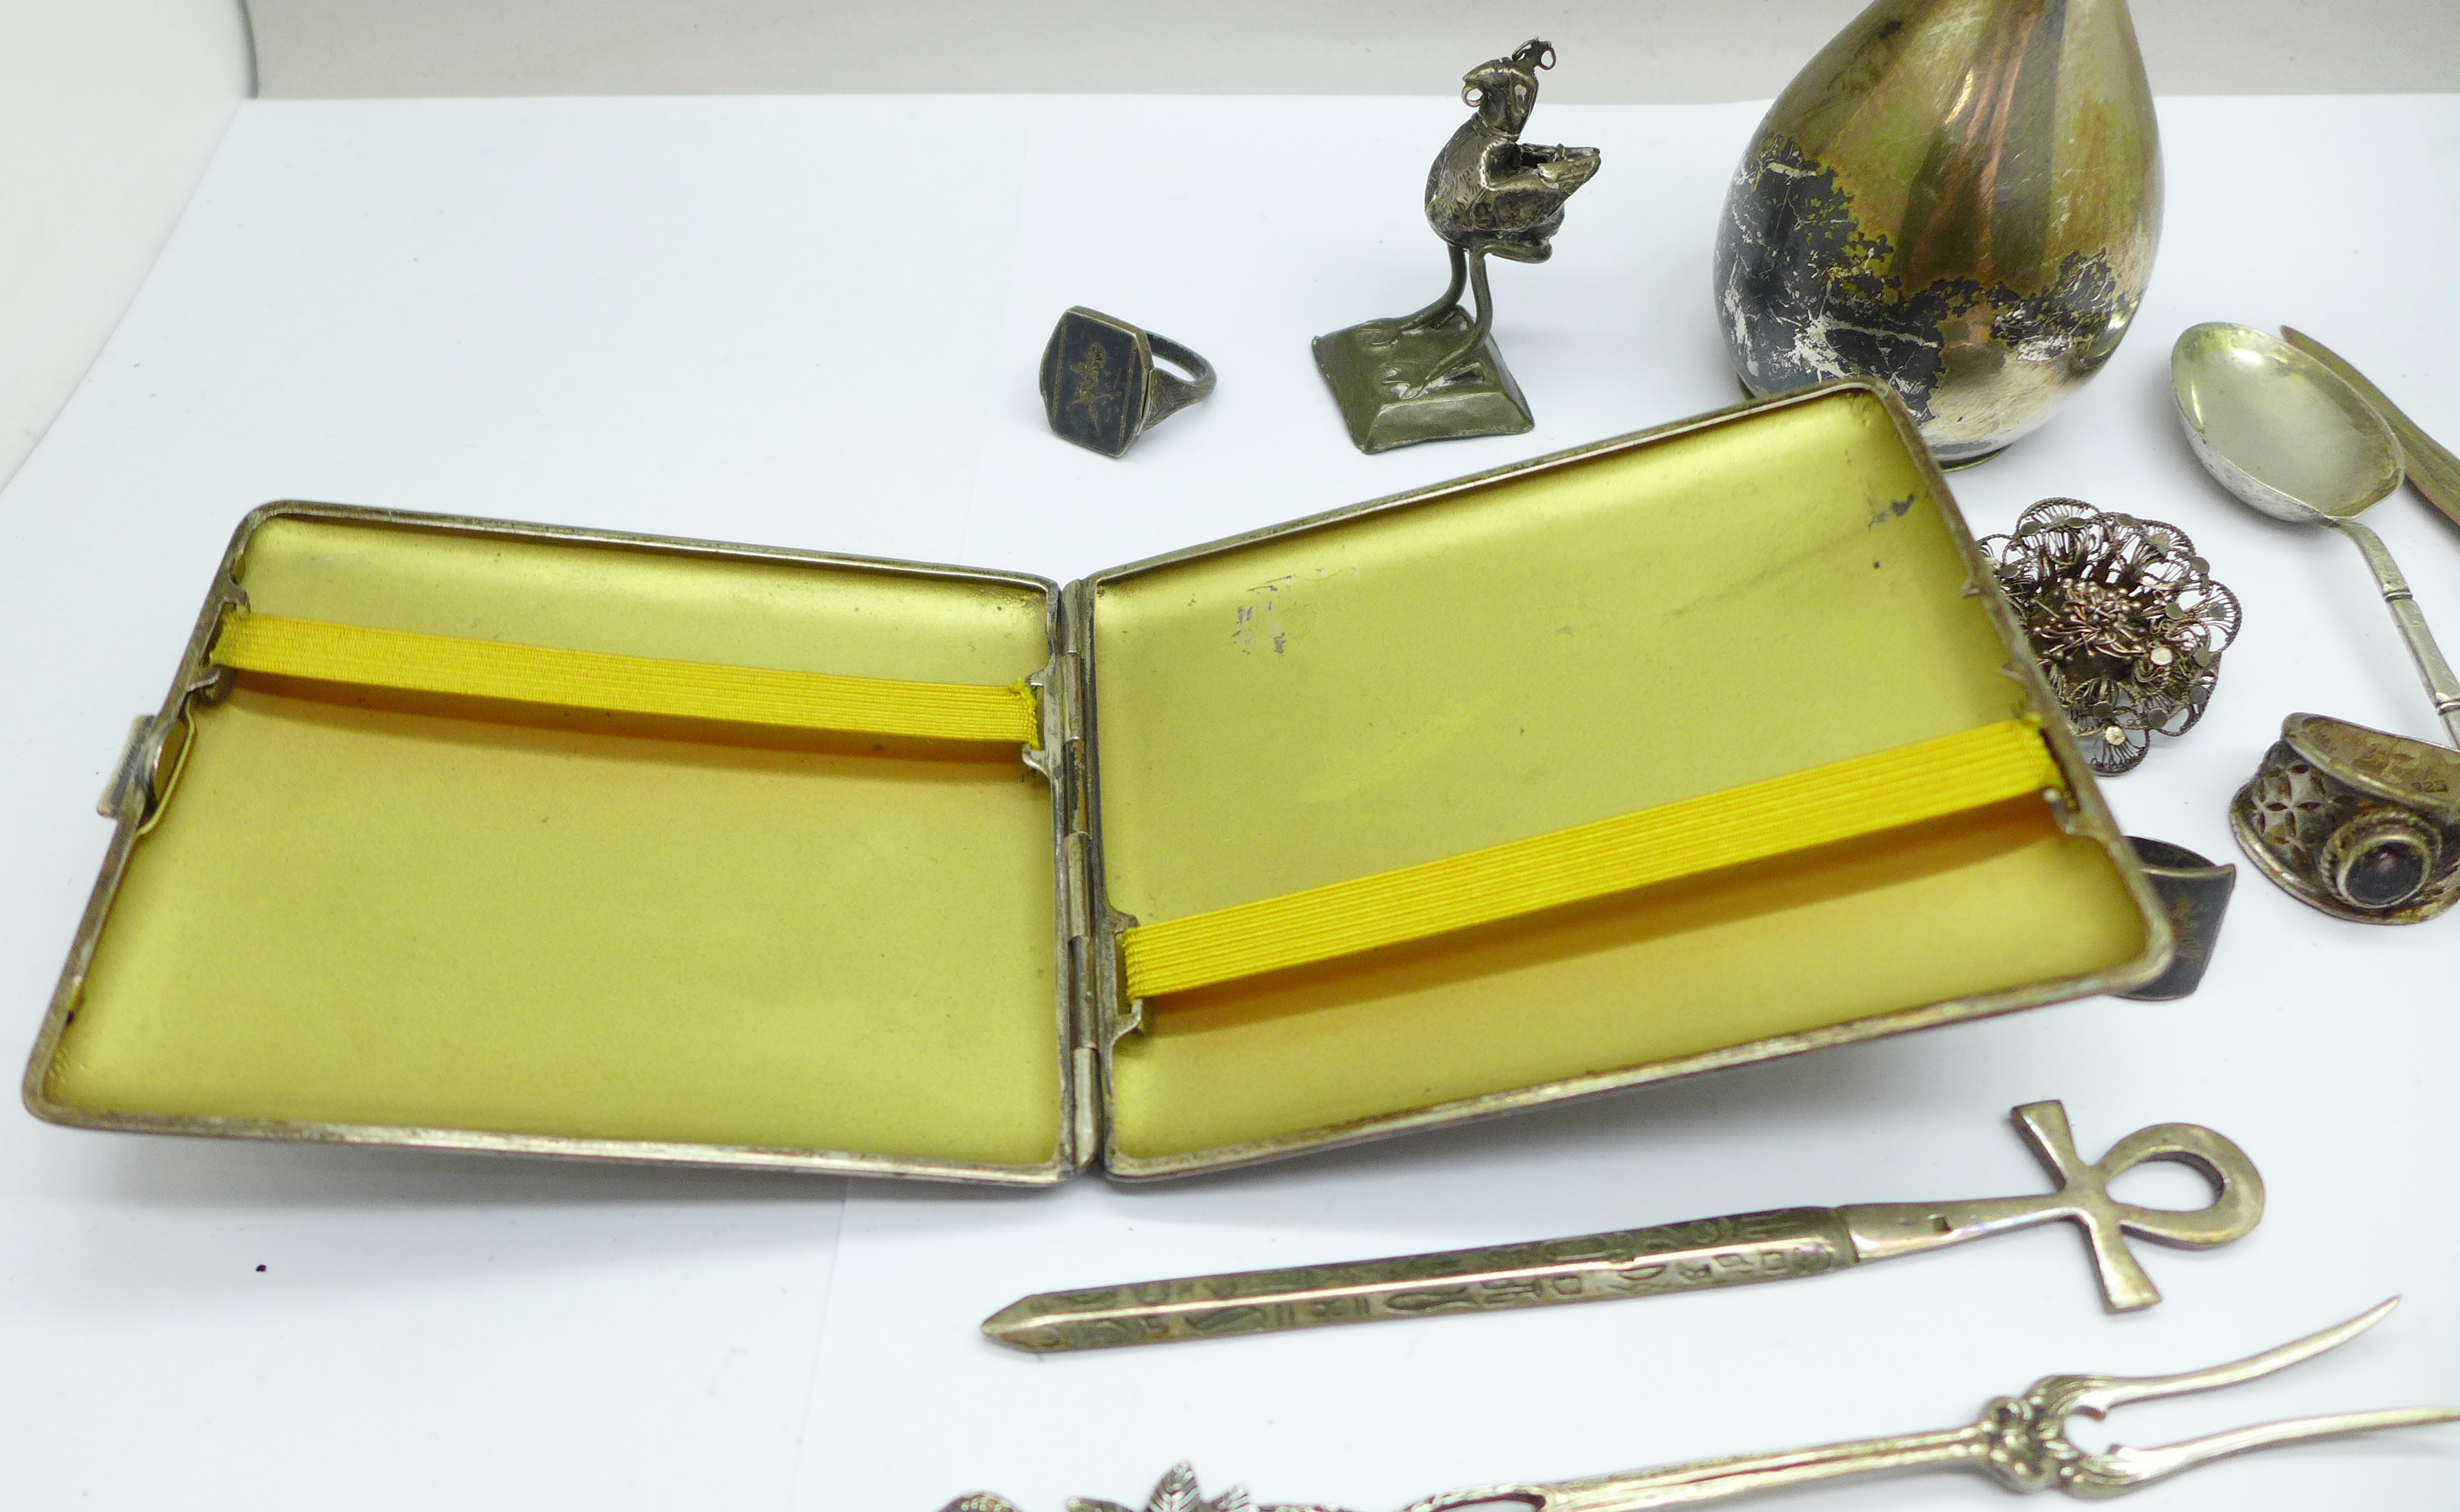 A collection of continental silver including a cigarette case, jug, rings, spoon, etc., 280g - Image 7 of 7